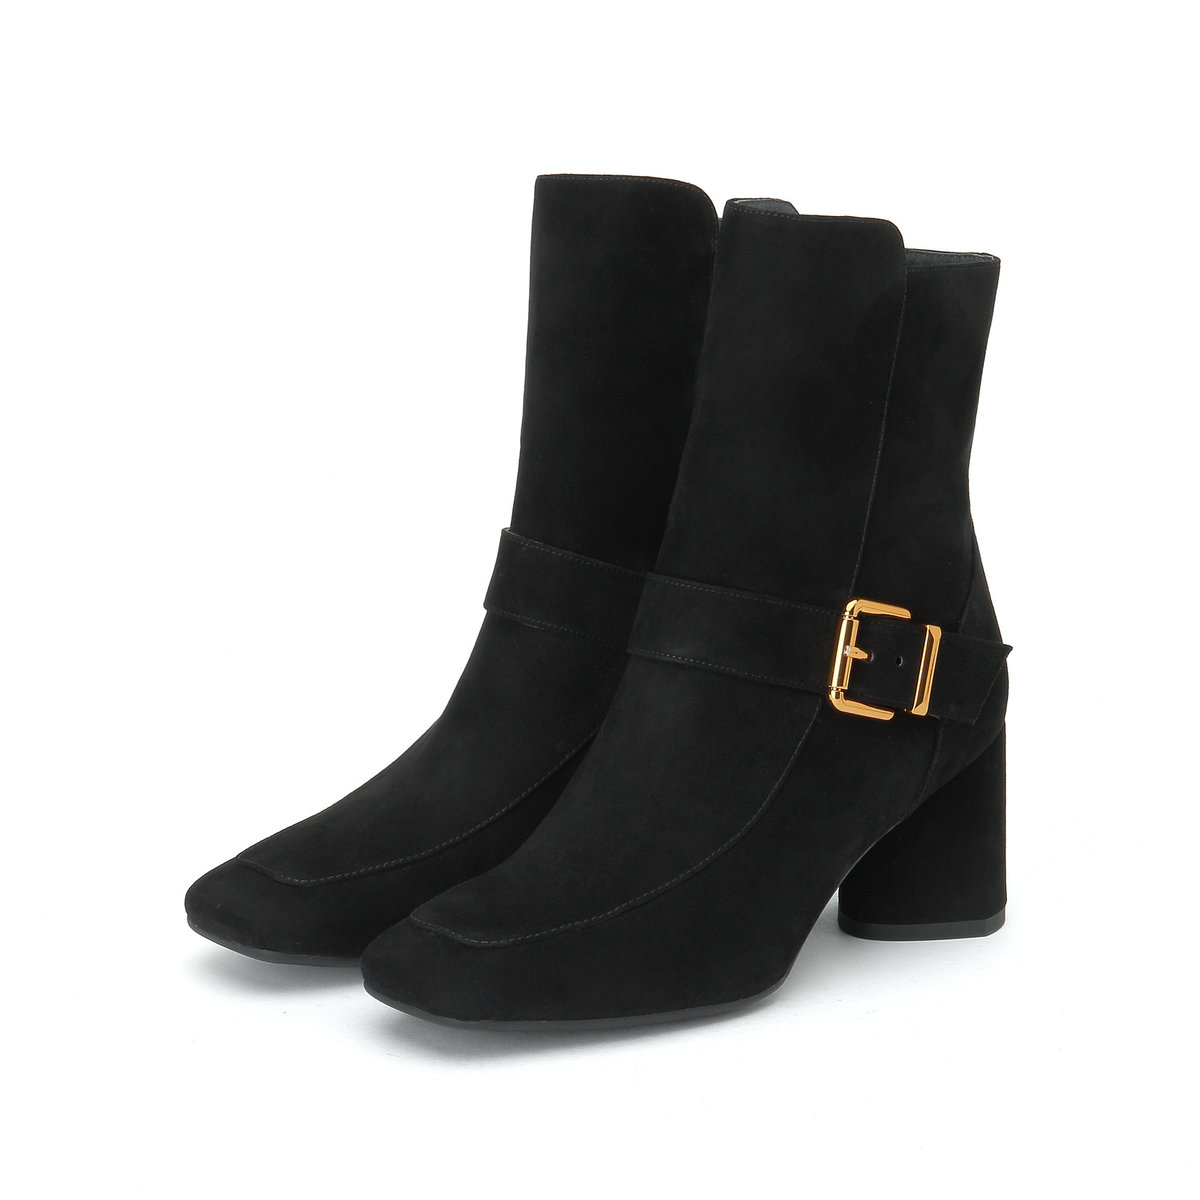 Suede Boots in Black